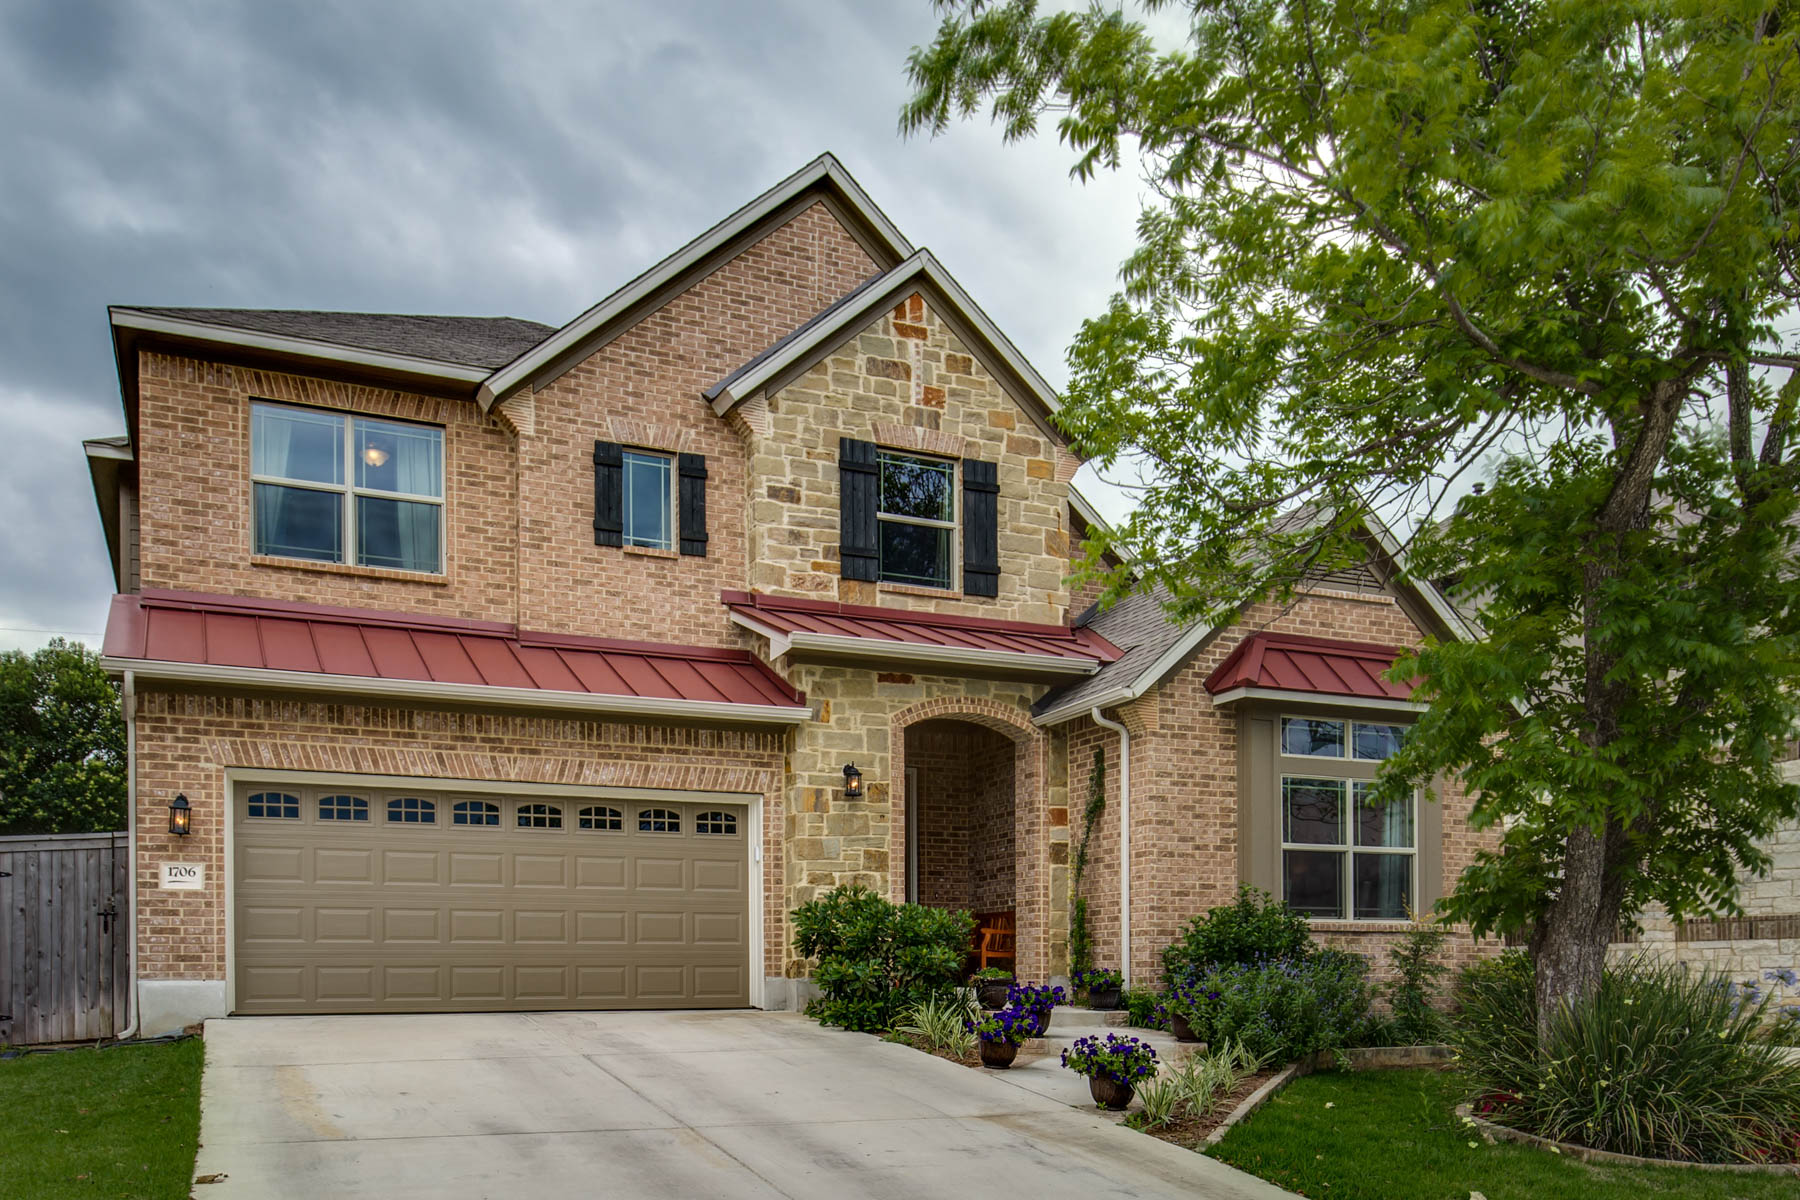 Single Family Home for Sale at Open Floor Plan in Crownhill Acres 1706 W Terra Alta Dr San Antonio, Texas, 78209 United States